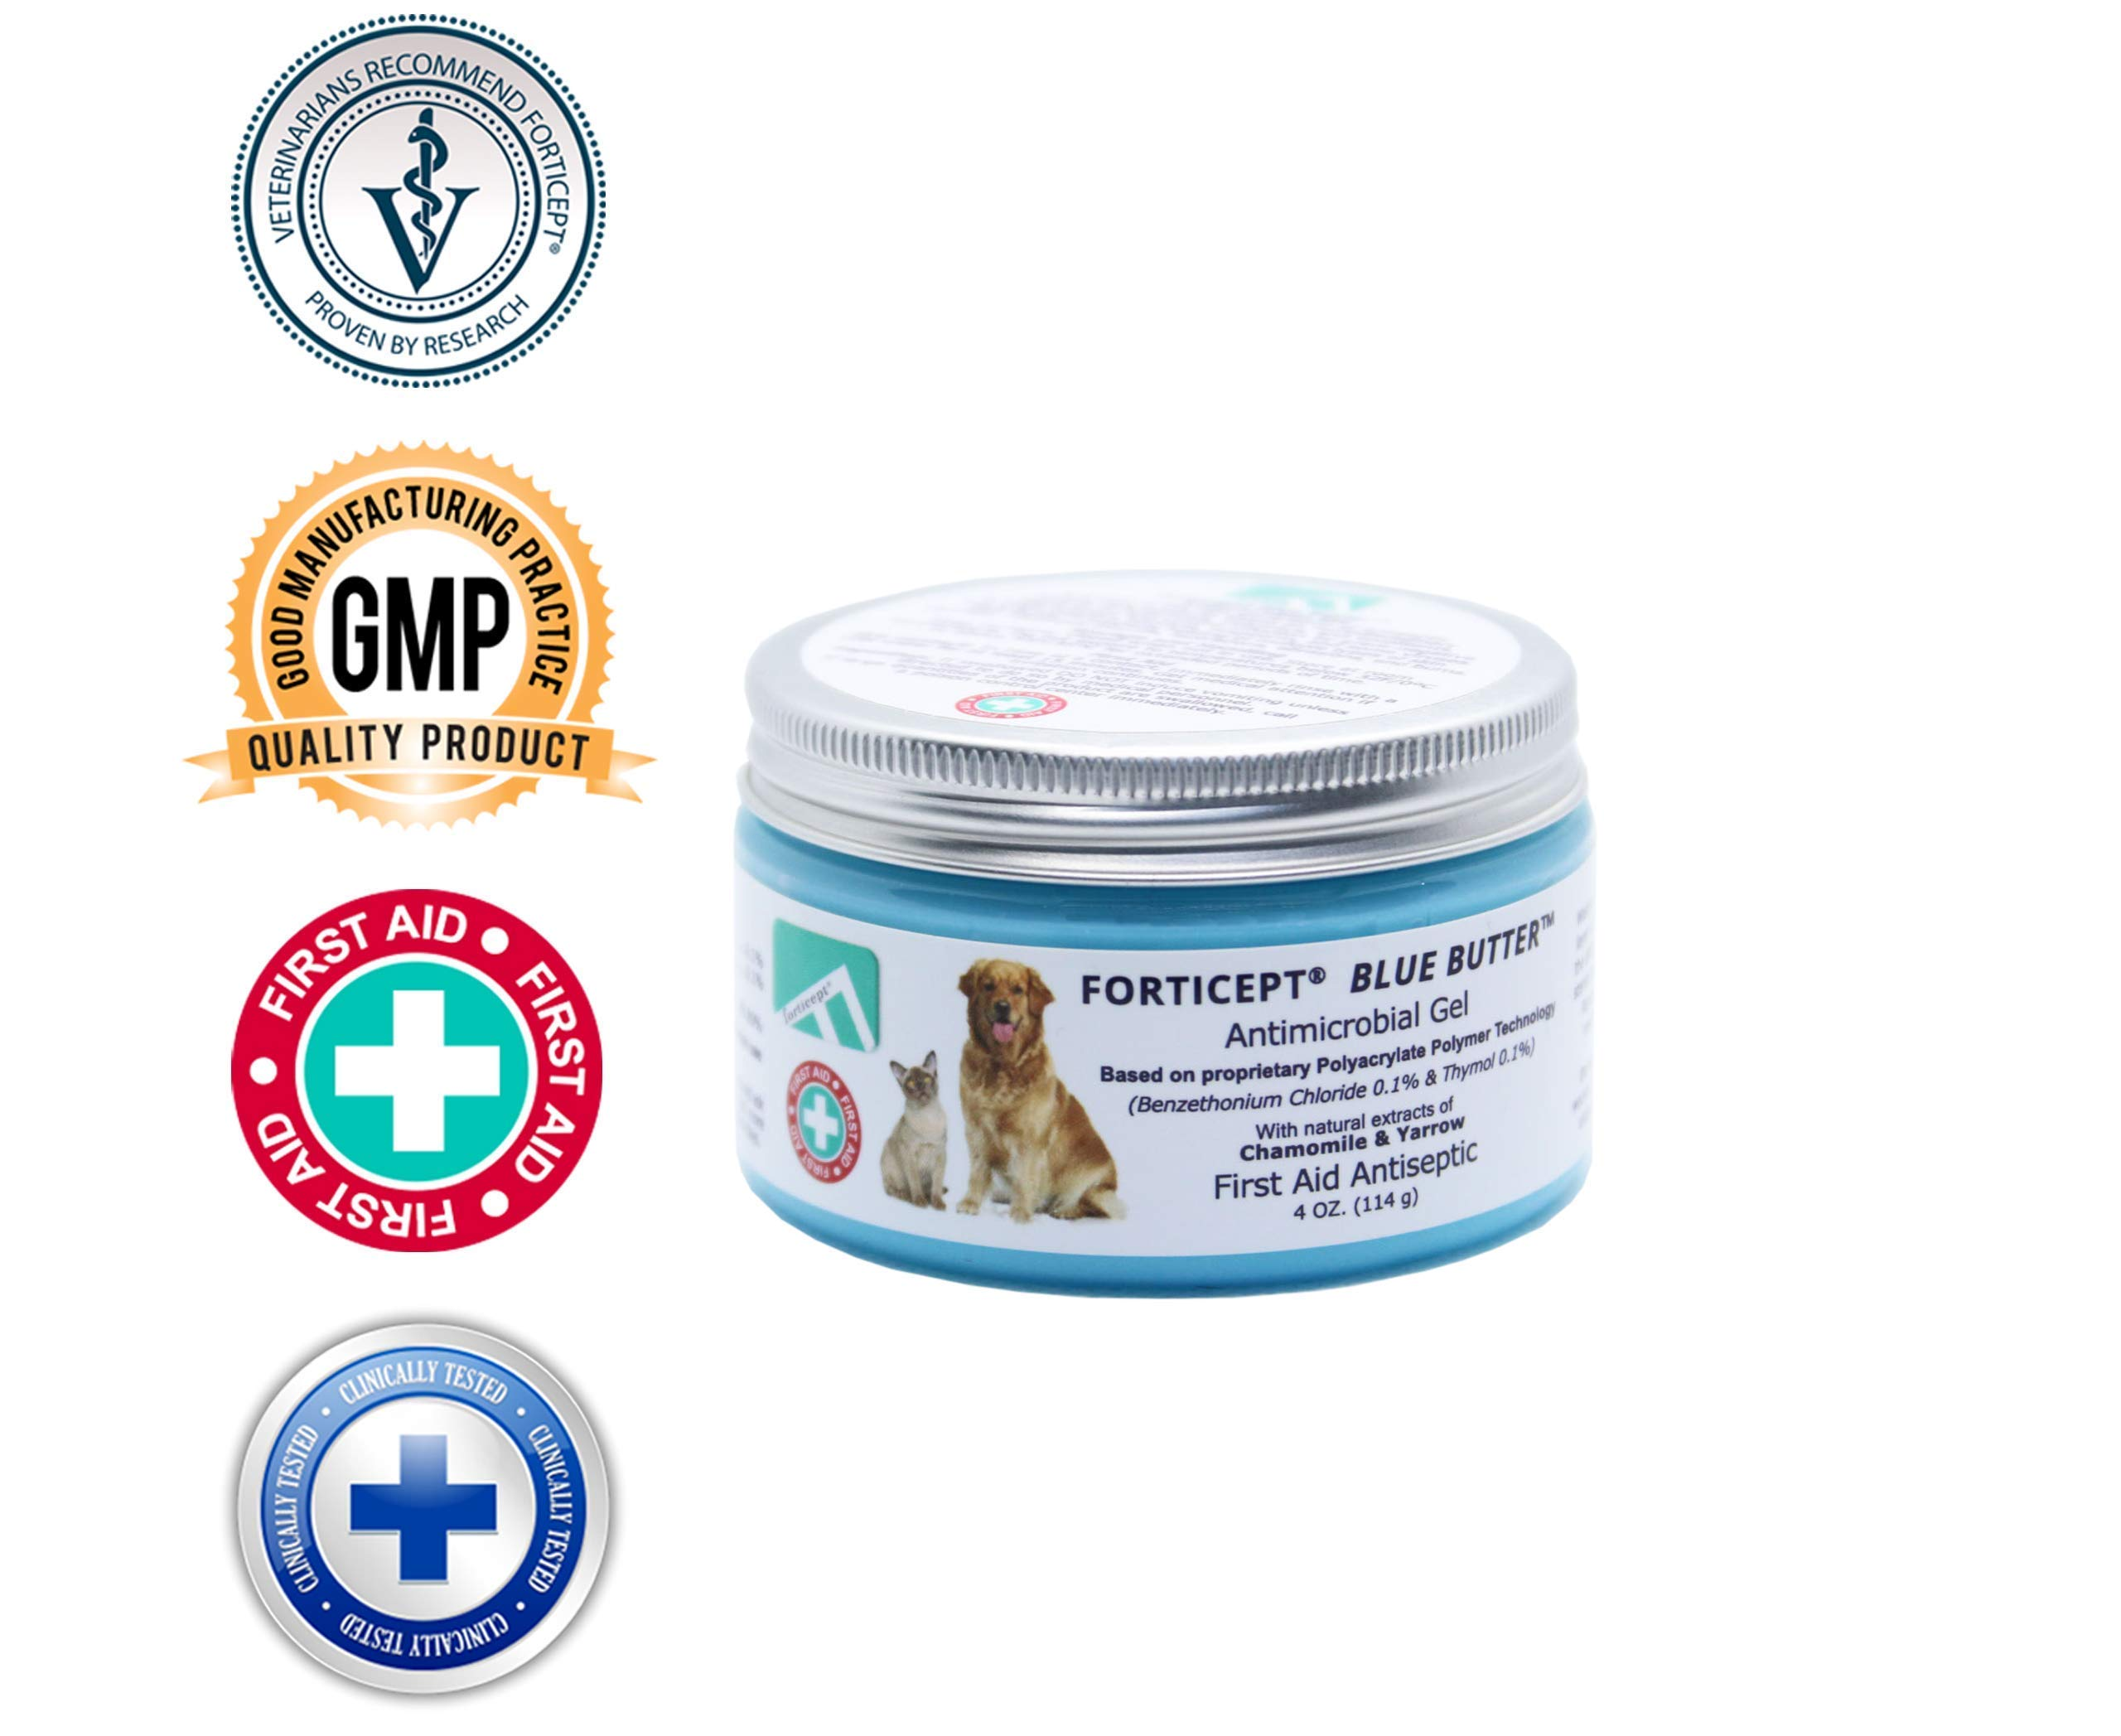 Forticept Blue Butter Antimicrobial Gel, Antiseptic Hydrogel Dogs Wound Care, Dogs & Cats for Skin Infections, Rashes, Sores, Wounds, Burns | 4 OZ by Forticept